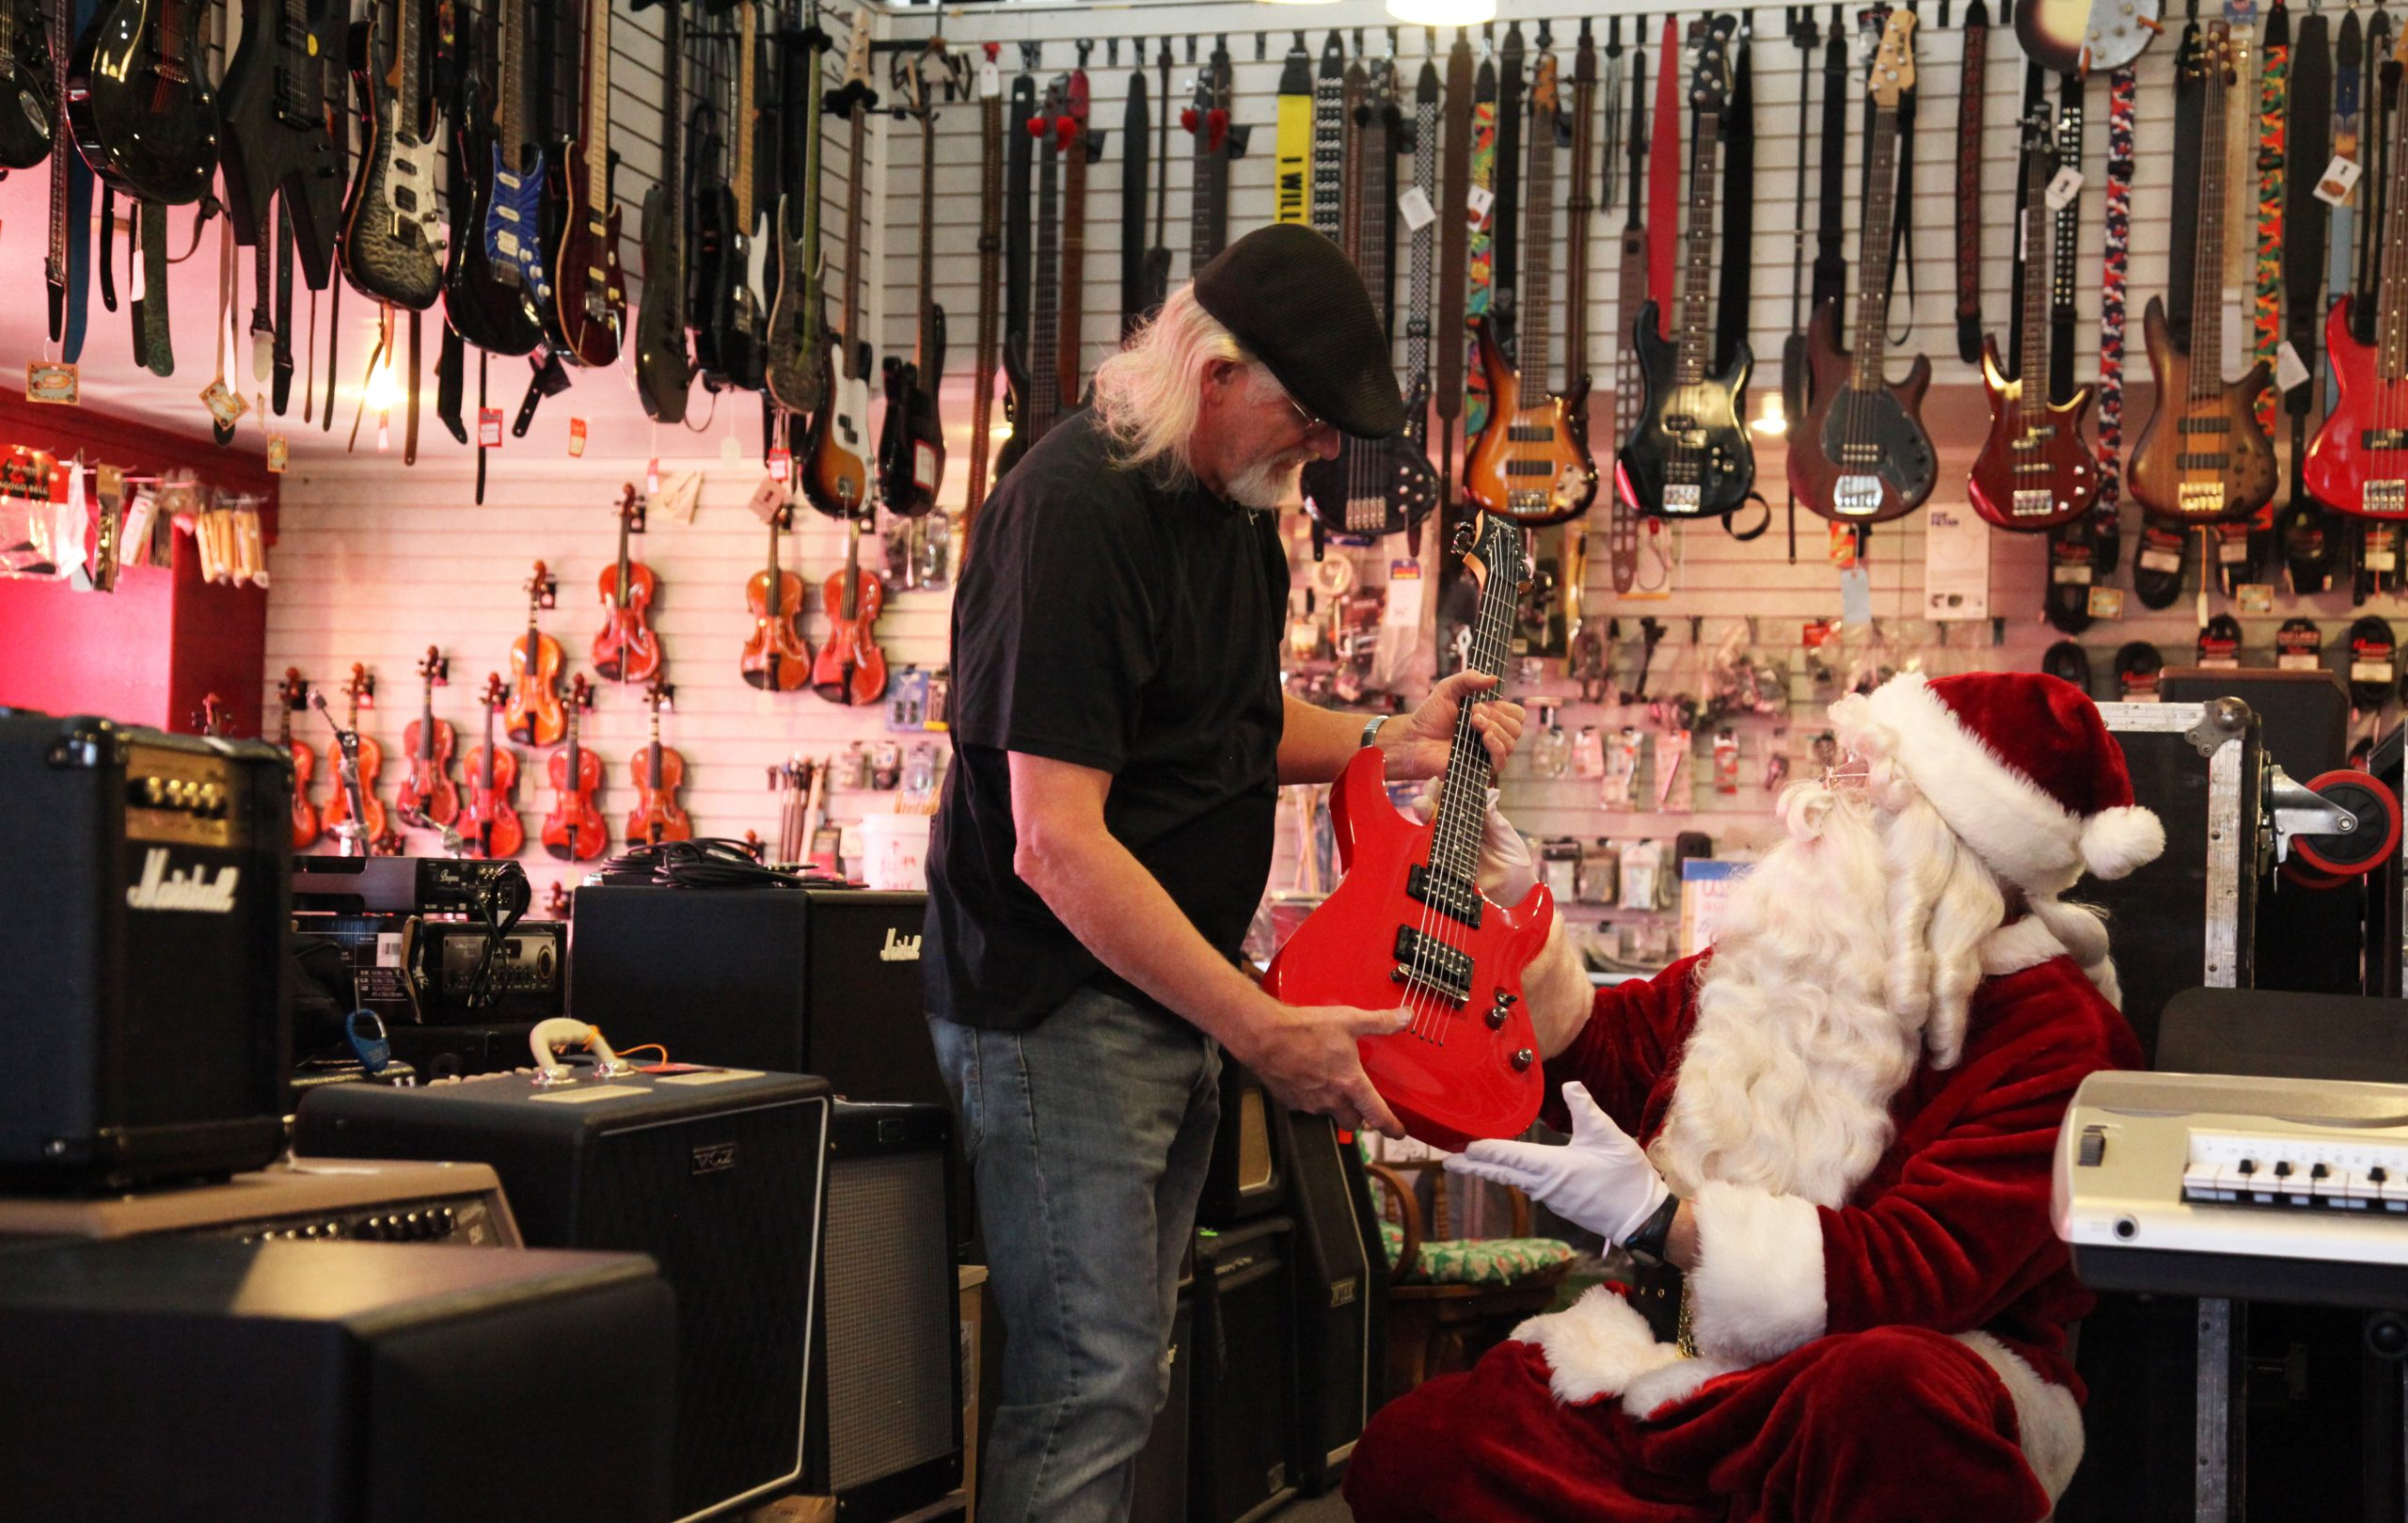 [Christmas Countdown] Give the Gift of Music This Christmas From Pickin' Palace